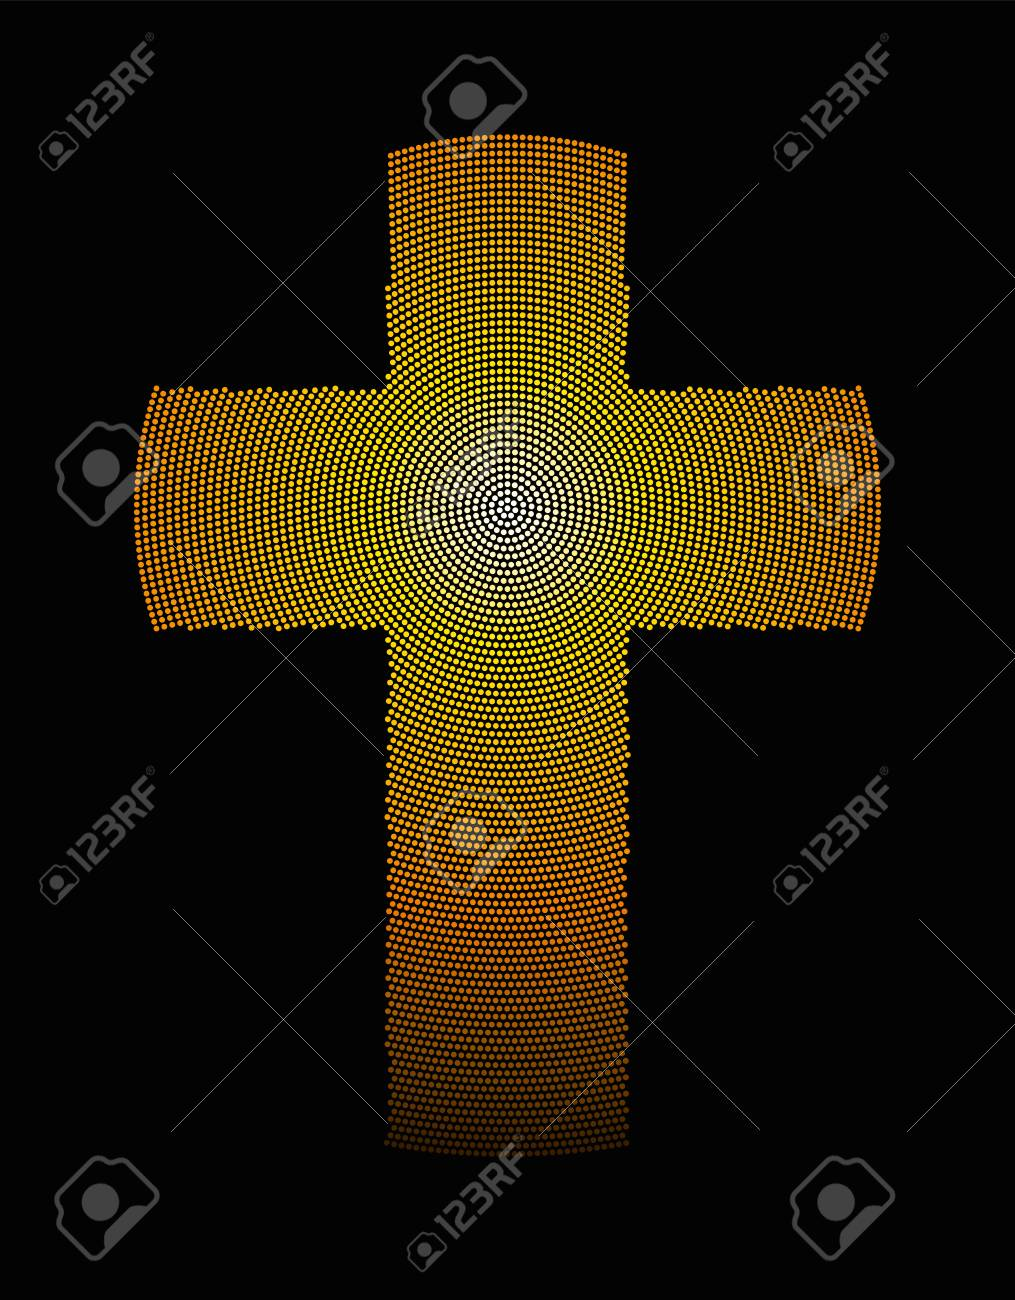 Golden Latin Cross Radial Dot Pattern Christian Cross Symbol